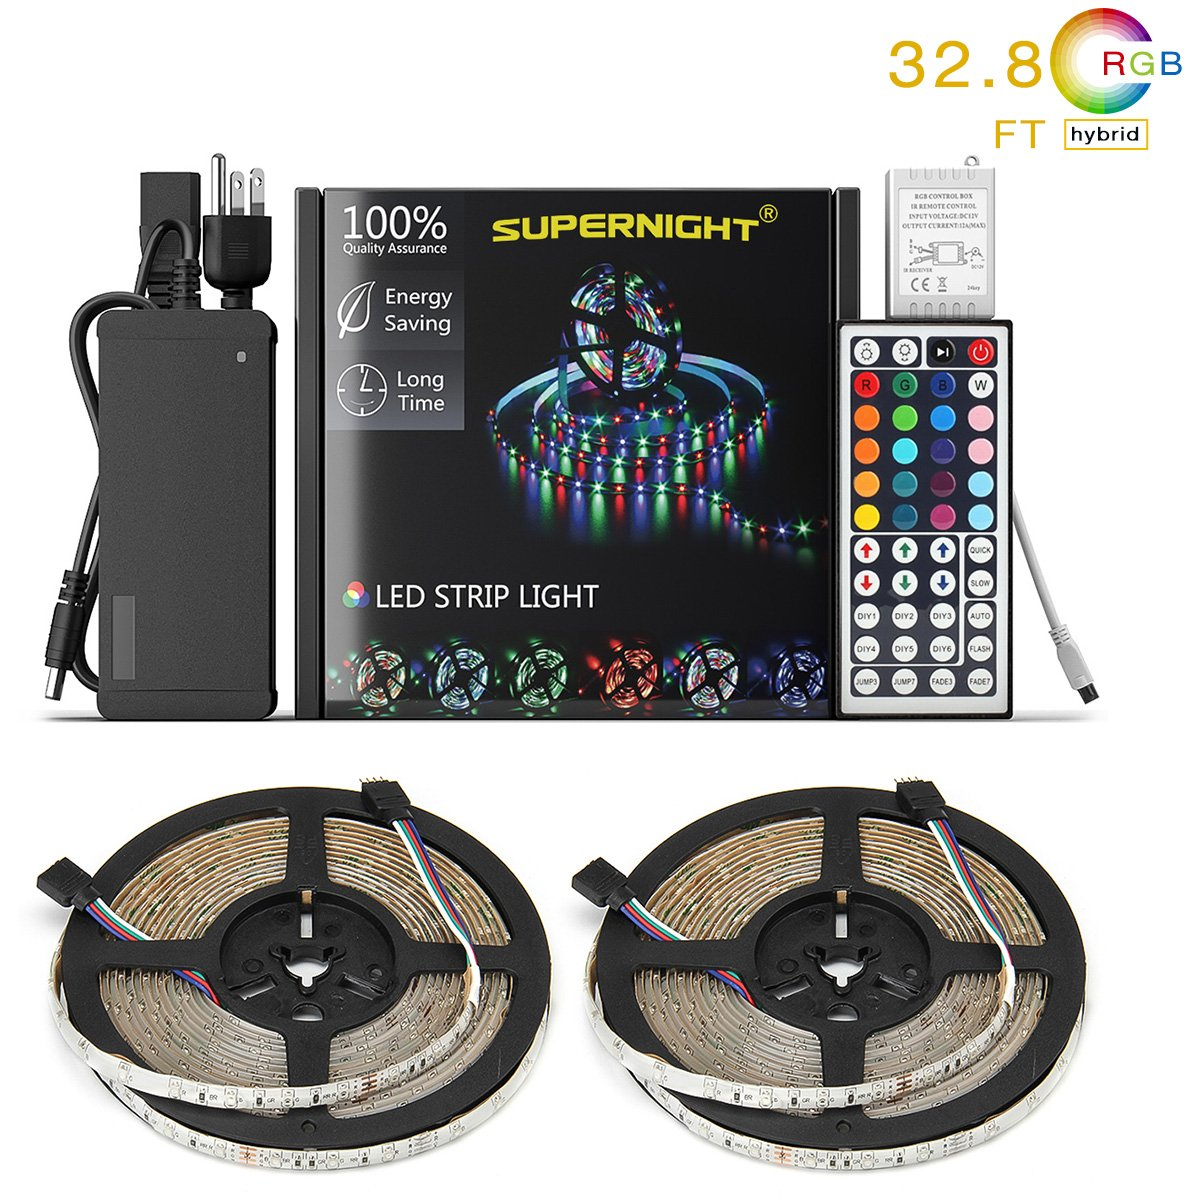 SUPERNIGHT LED Strip Lights,TWO 16.4Ft LED Light Strip Kit Non-Waterproof DC12V 3528 RGB【NO White Color】300leds Flexible Strip Lights with Double PCB 44Key Remote,Stronger Adhesive Tape and 5A Adapter EBT960